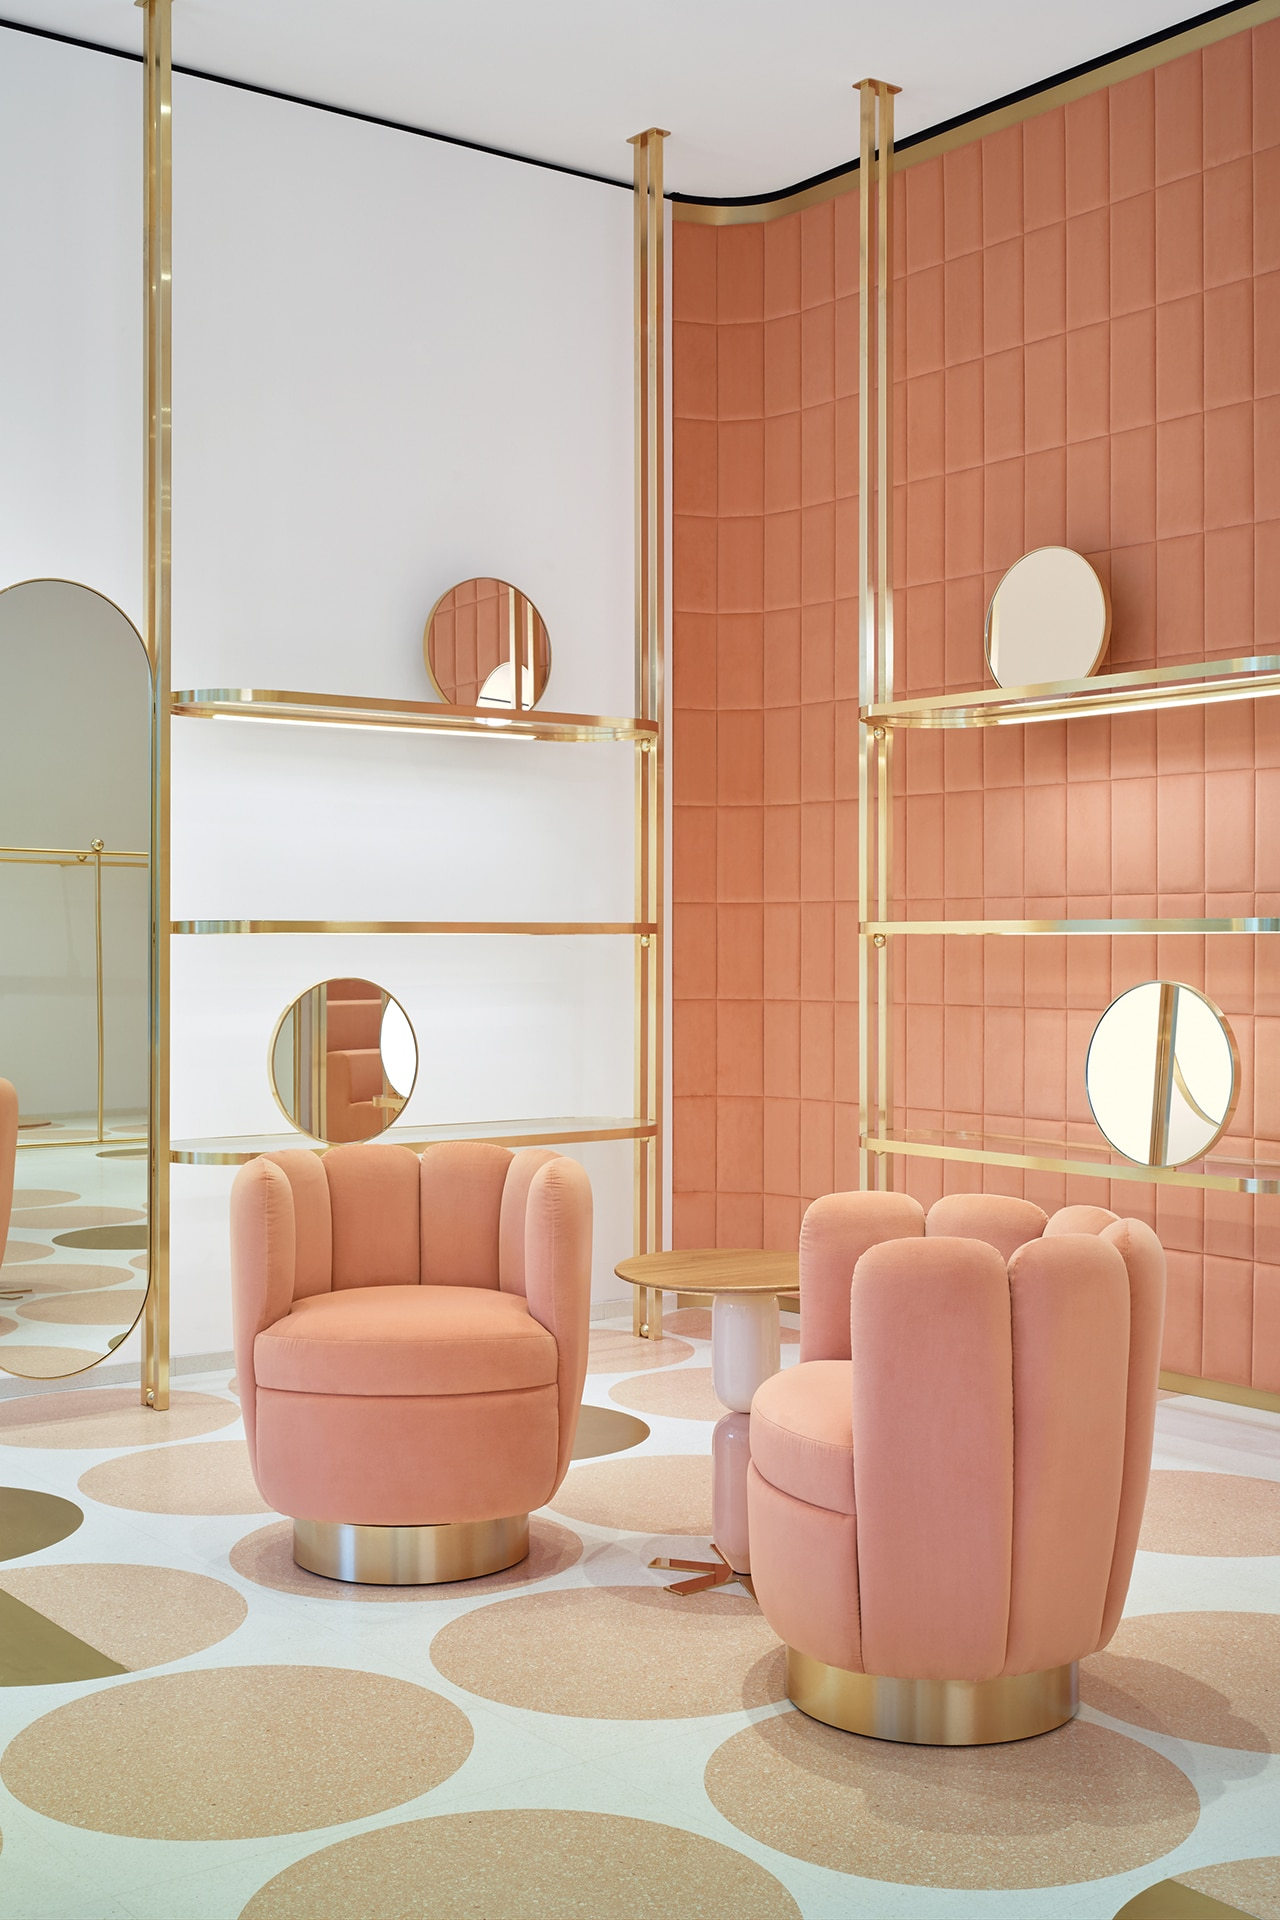 Get excited! India Mahdavi is coming to Melbourne in 2020